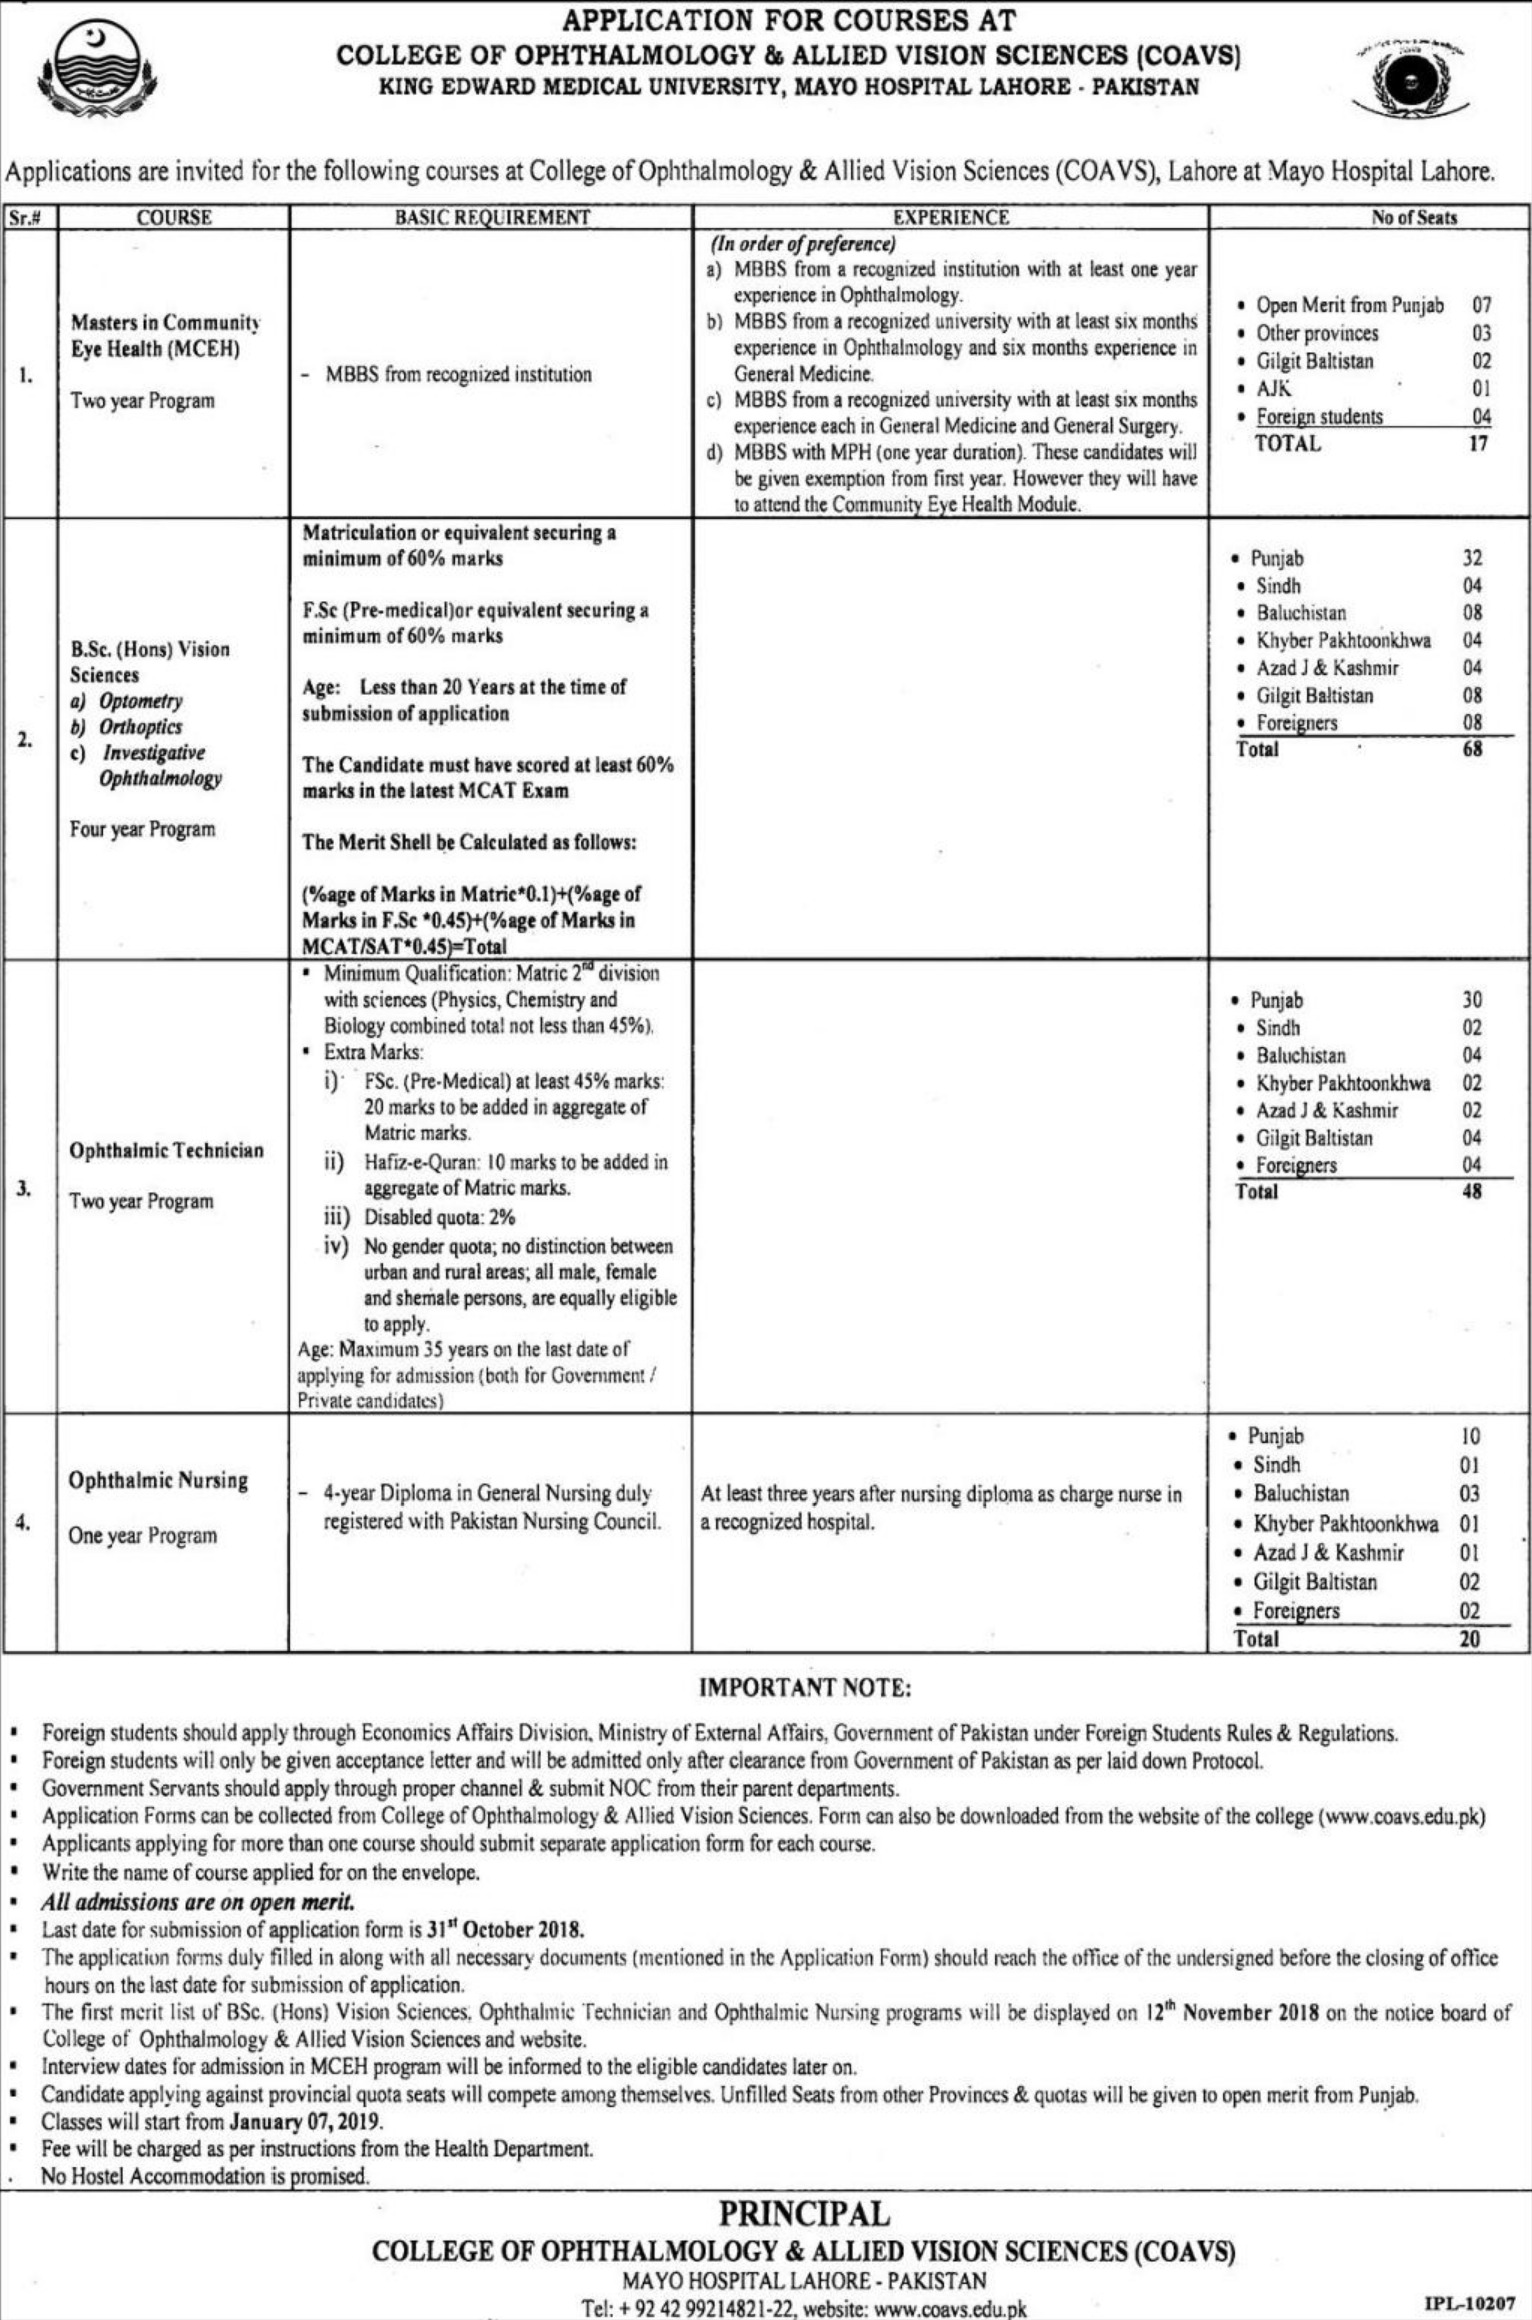 COAVS Mayo Hospital Lahore Courses 18 October 2018